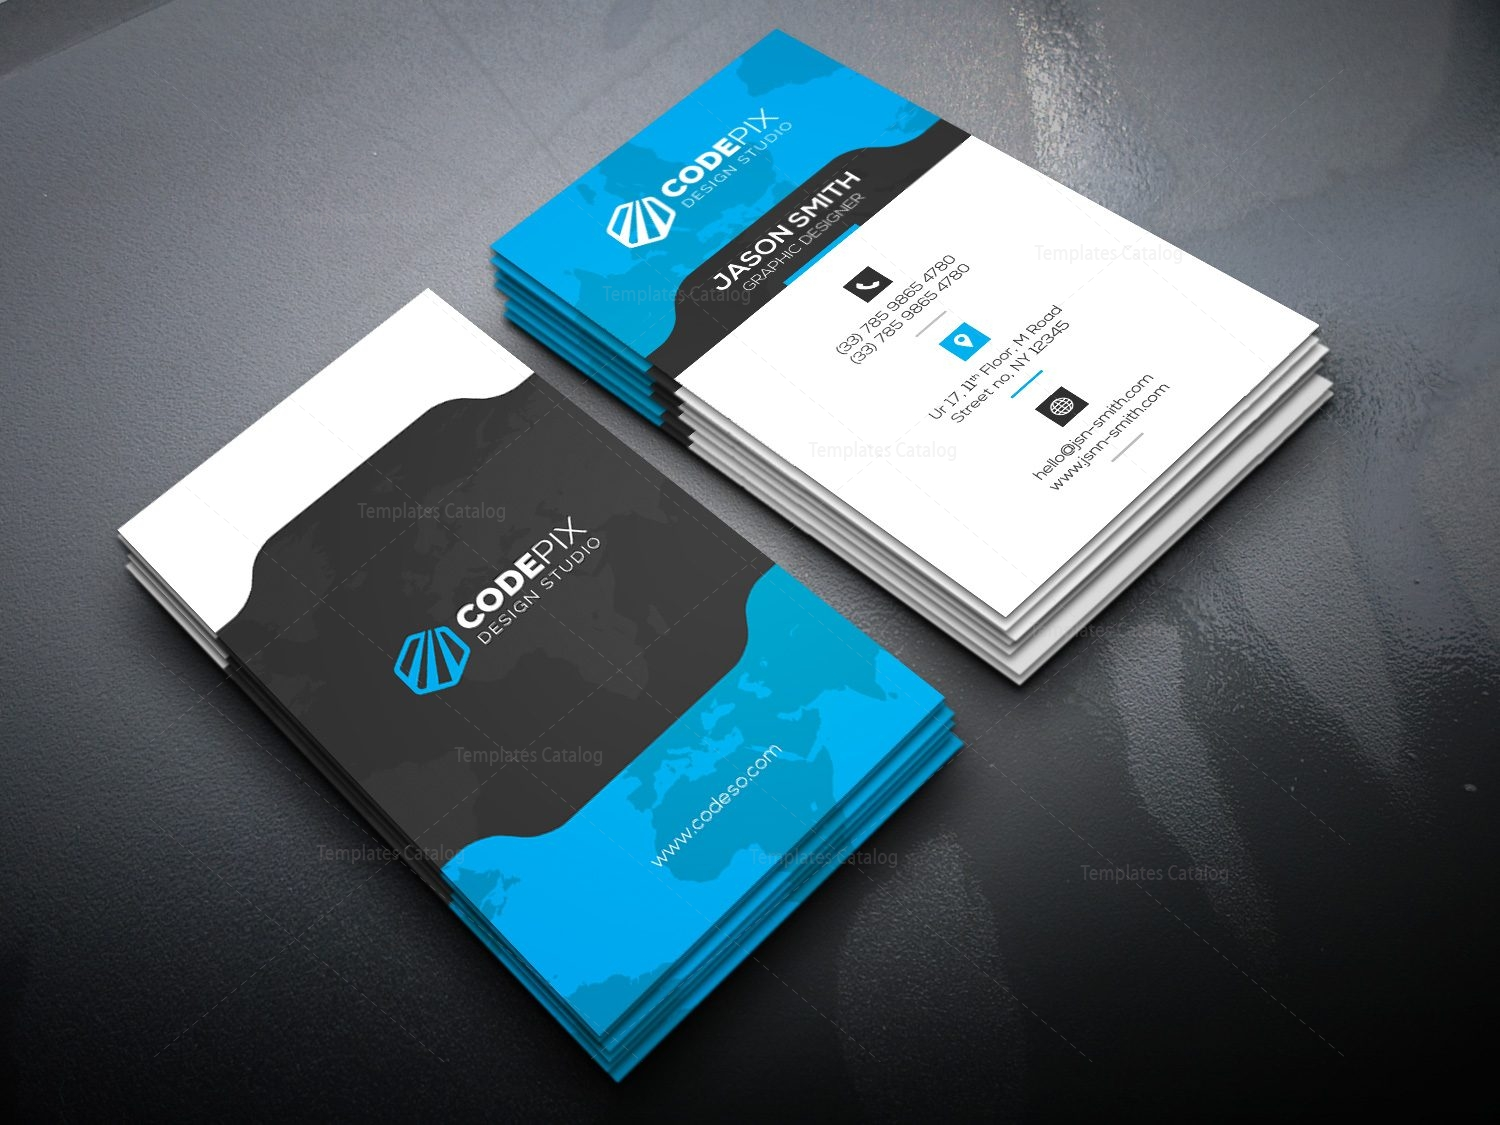 Vertical business card with stylish design 000521 template catalog vertical business card with stylish design 3 wajeb Image collections